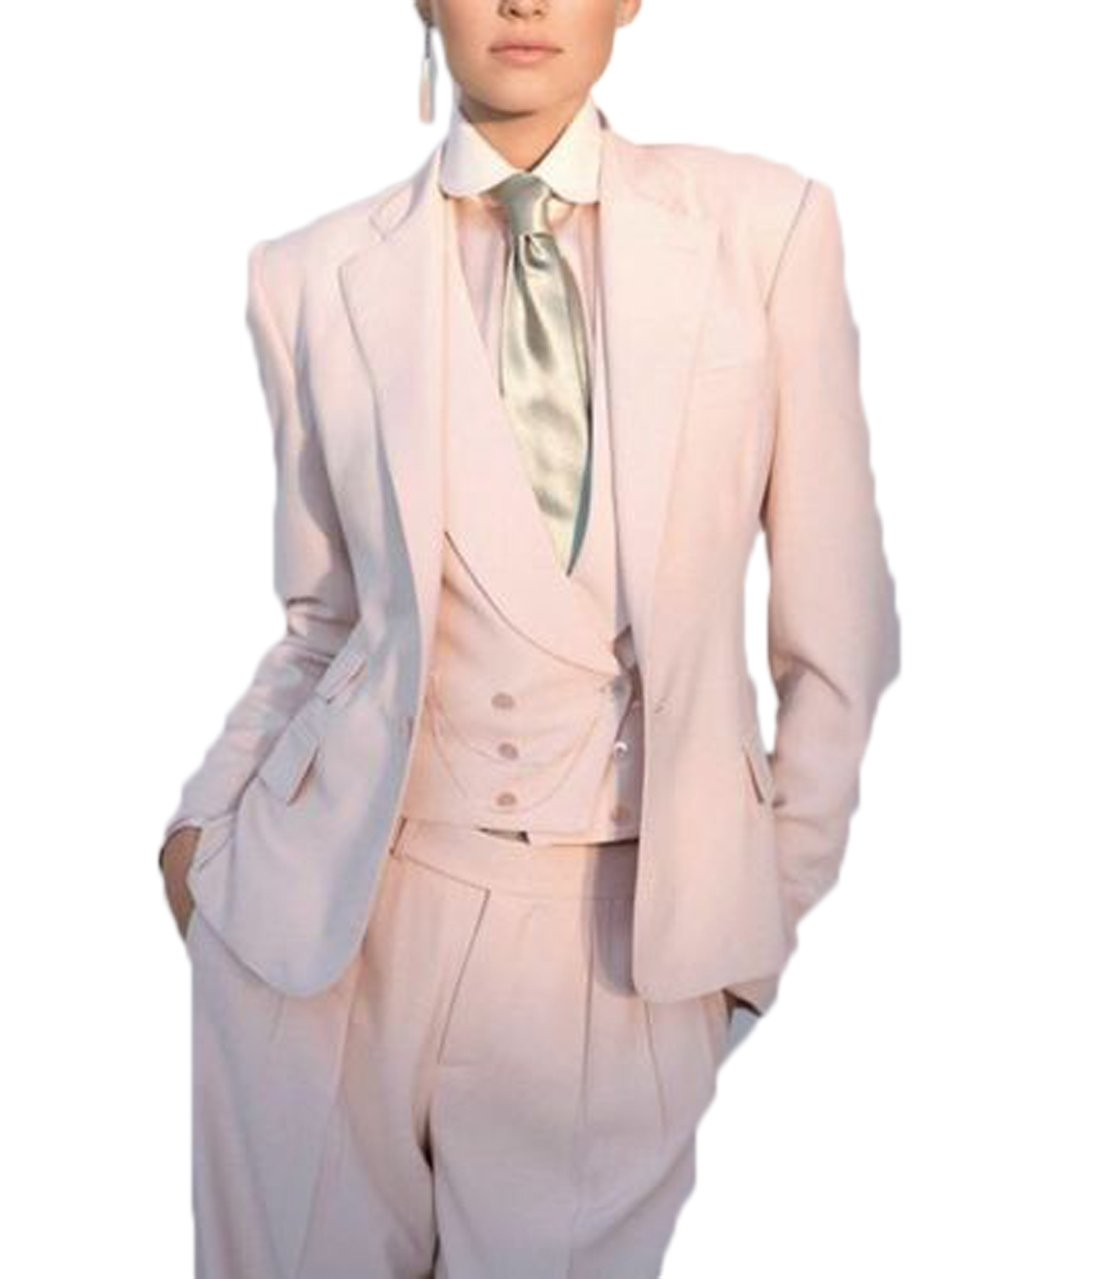 Silver Moonlight Women's Novelty 2 Button White Pant Suit (2XL) by Silver Moonlight (Image #1)